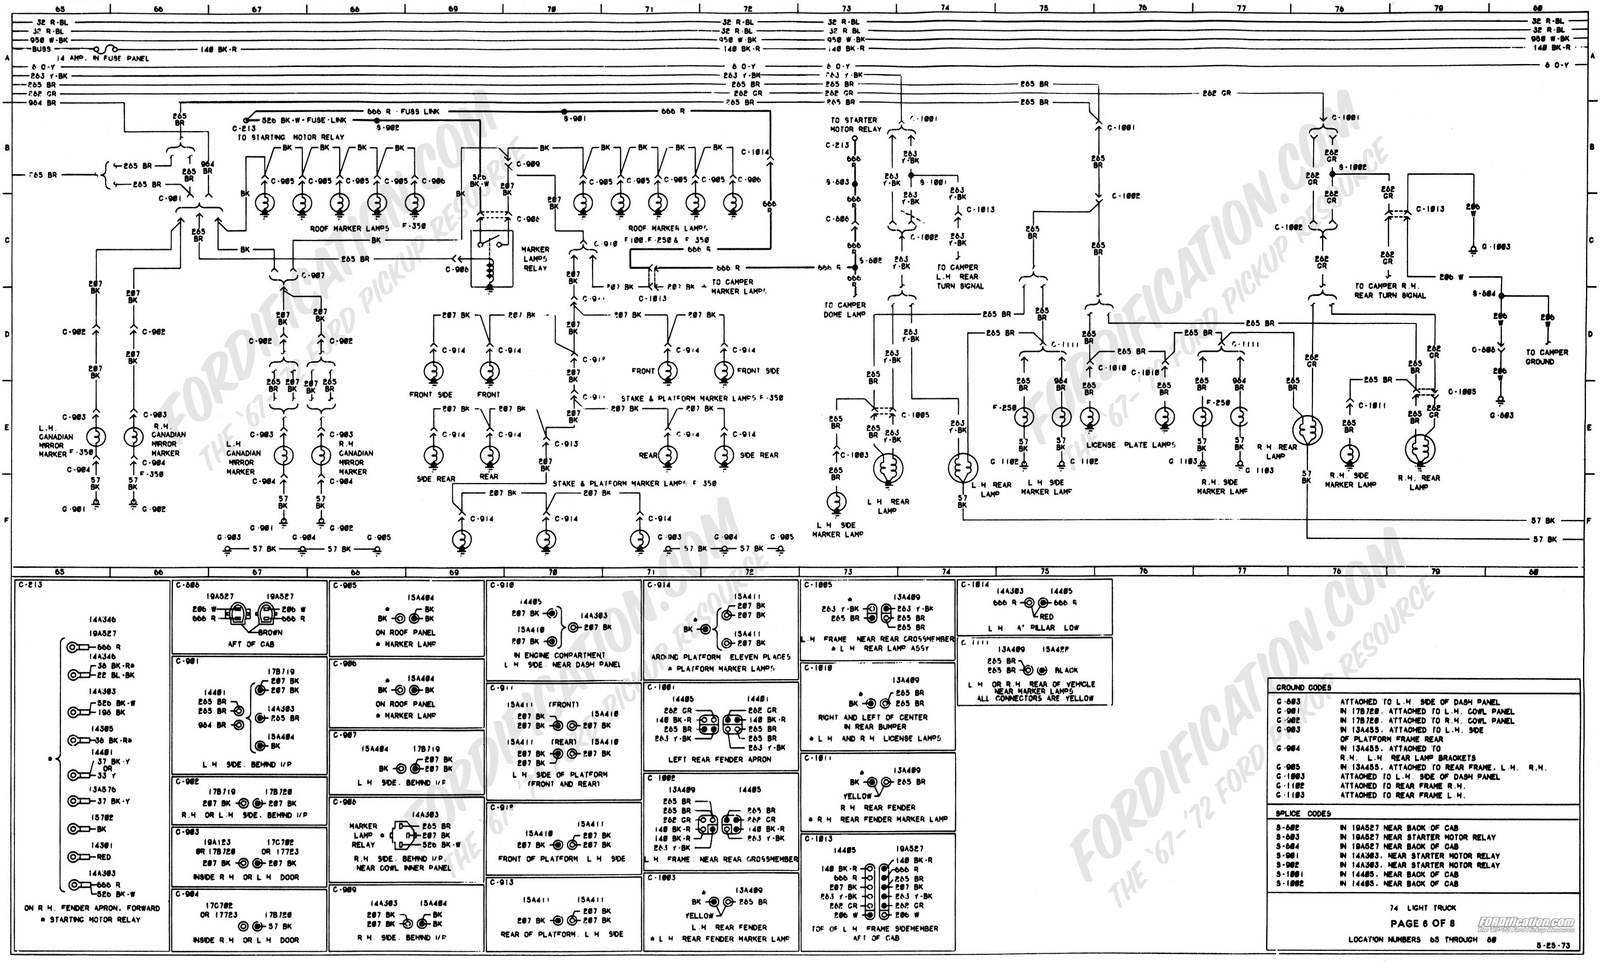 1999 ford f250 headlight wiring diagram toyota corolla f 150 questions are the taillights wired to